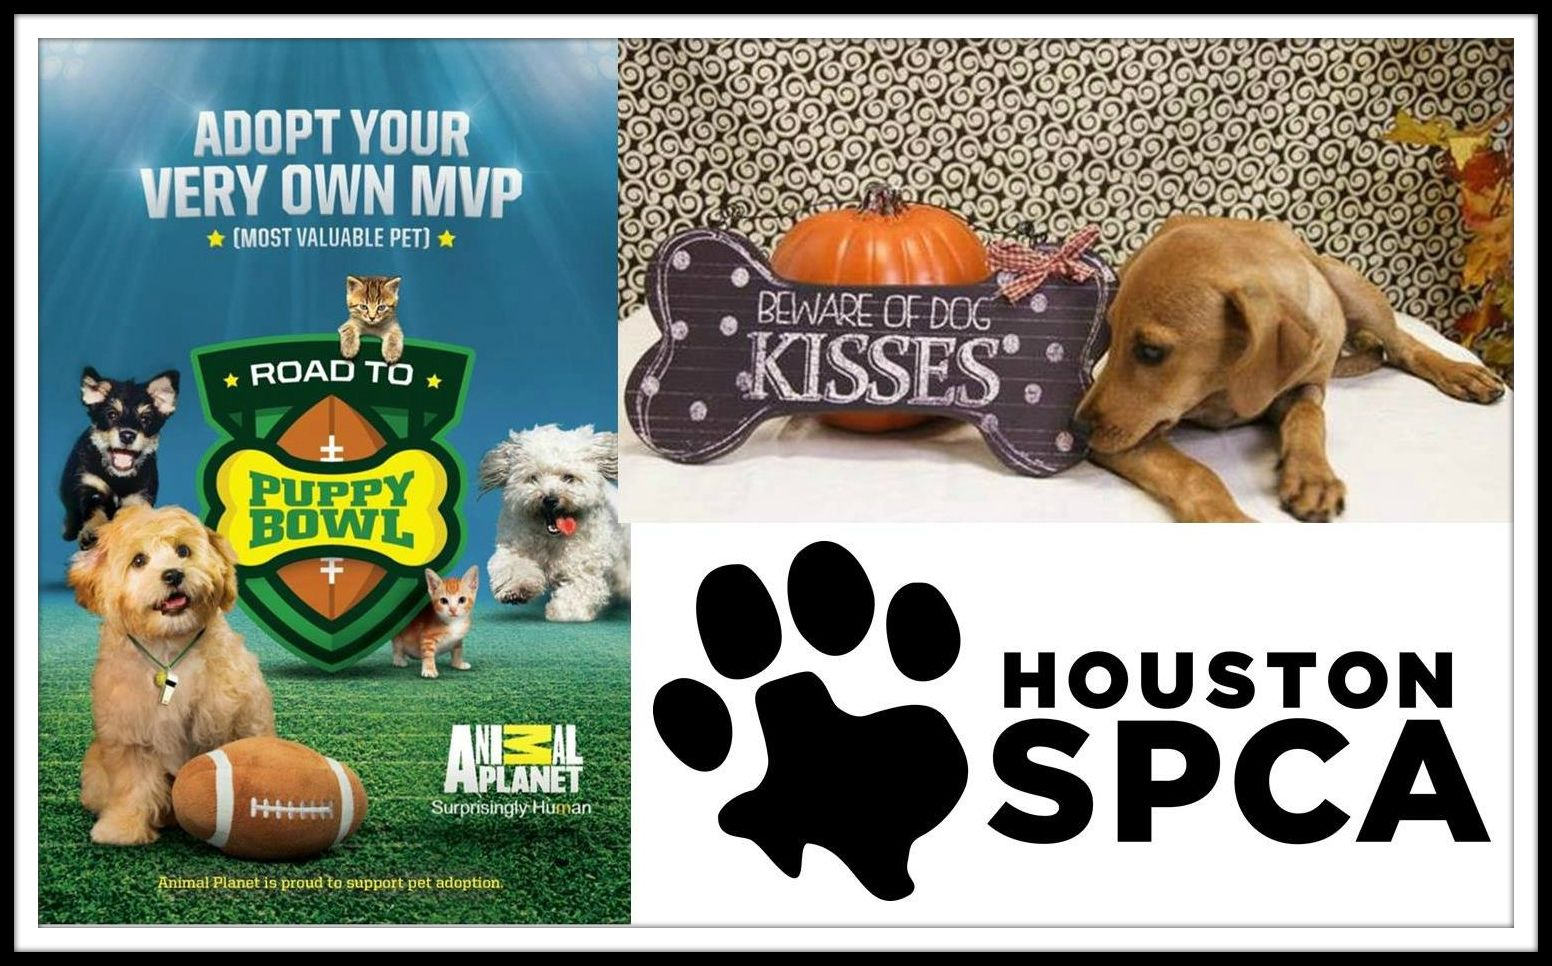 There Is Still Time To Register For Today S Road To Puppy Bowl Event From 3 P M To 7 P M At The Shelter 900 Portway Dri Puppy Bowls Puppies Adoption Options